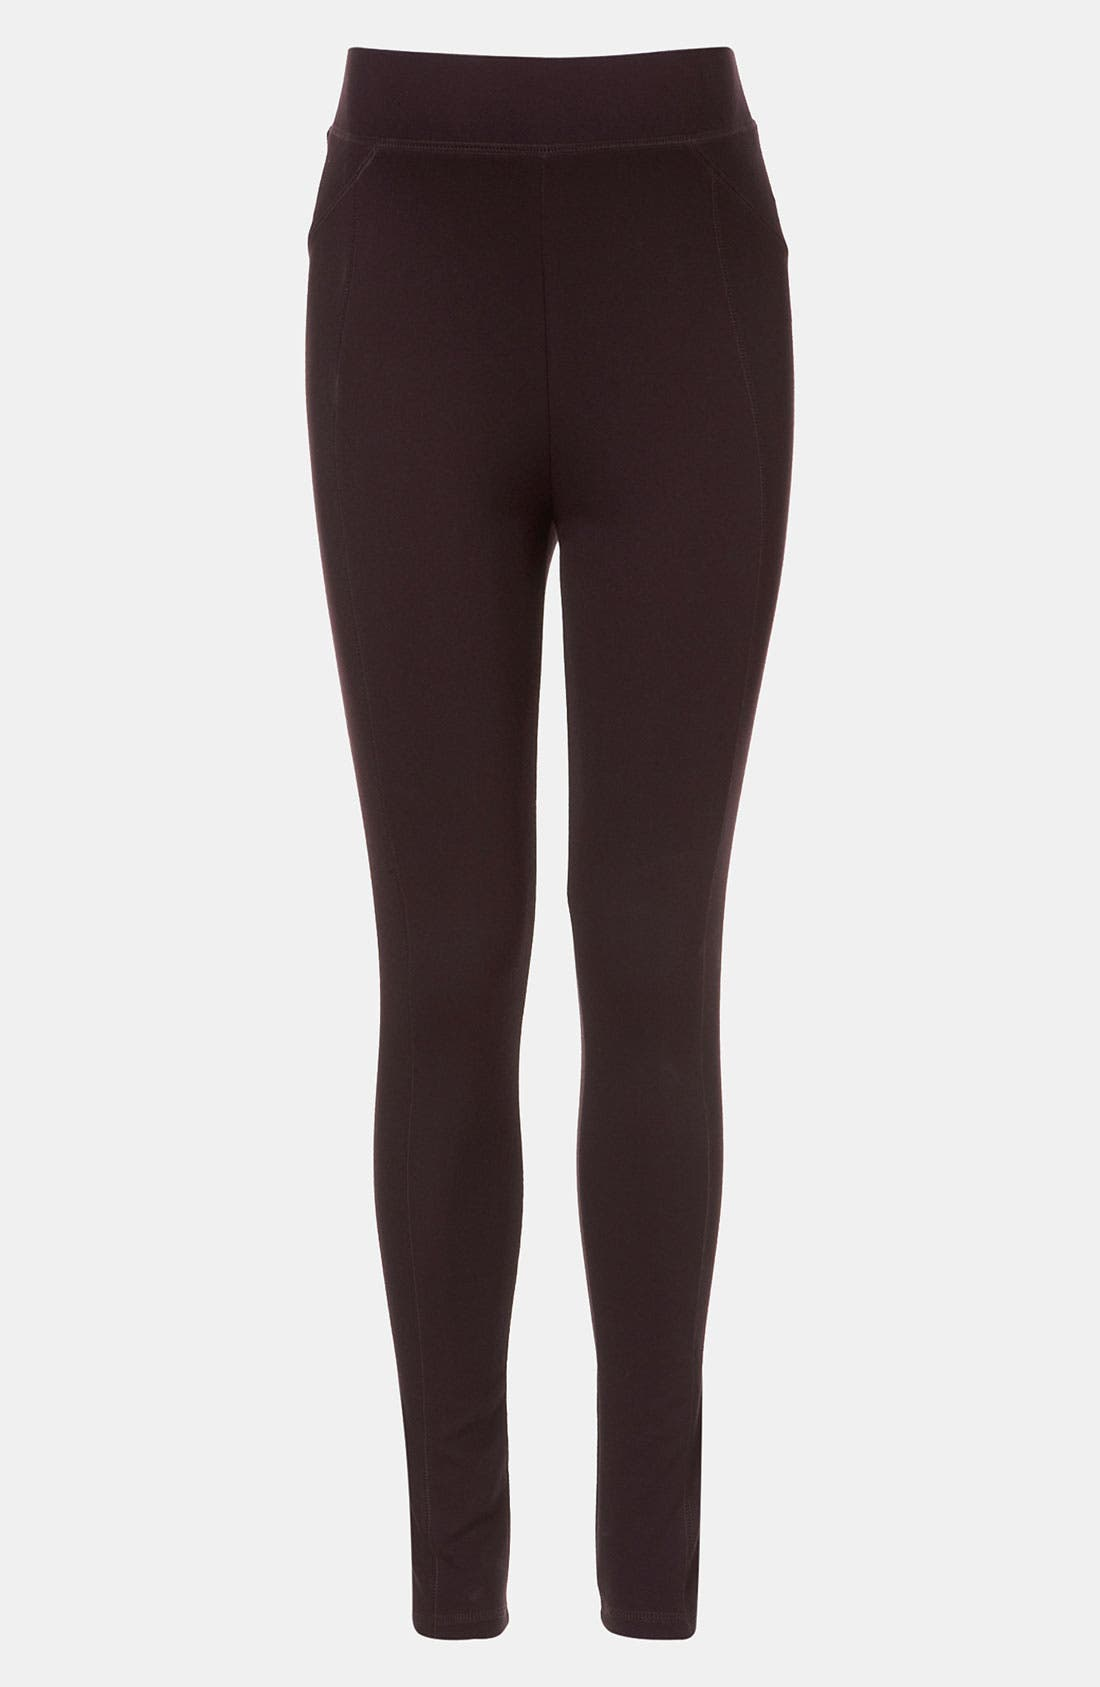 Alternate Image 1 Selected - Topshop Ponte Knit Maternity Leggings